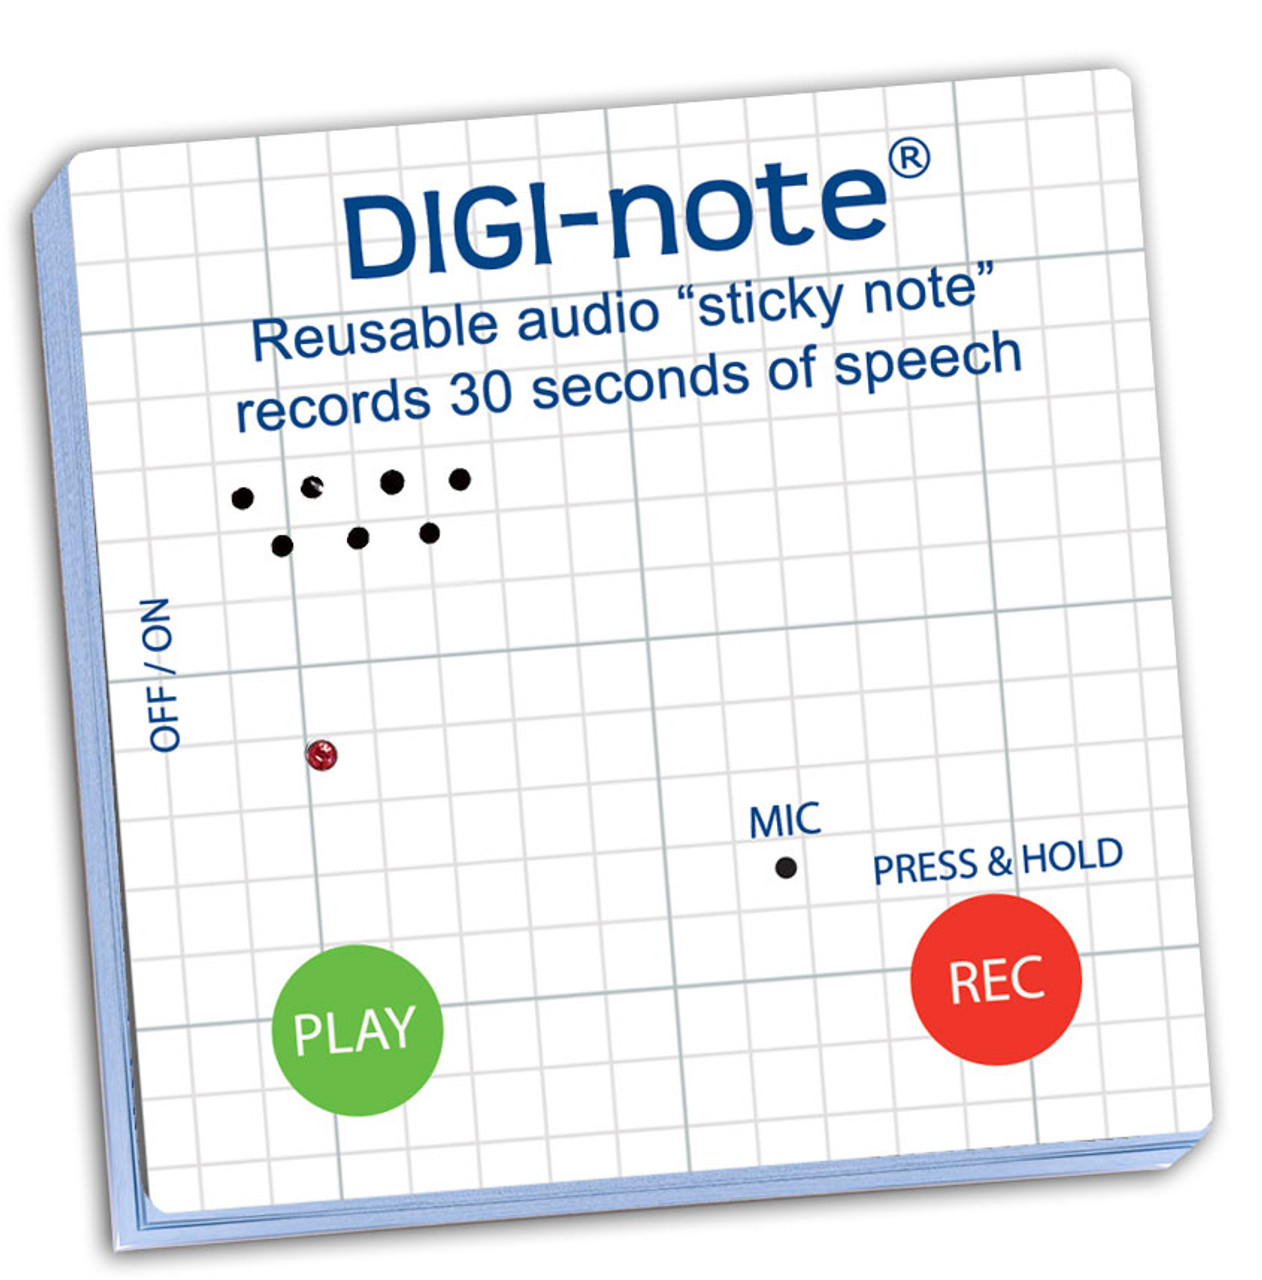 Digi-note voice recording sticky note pad